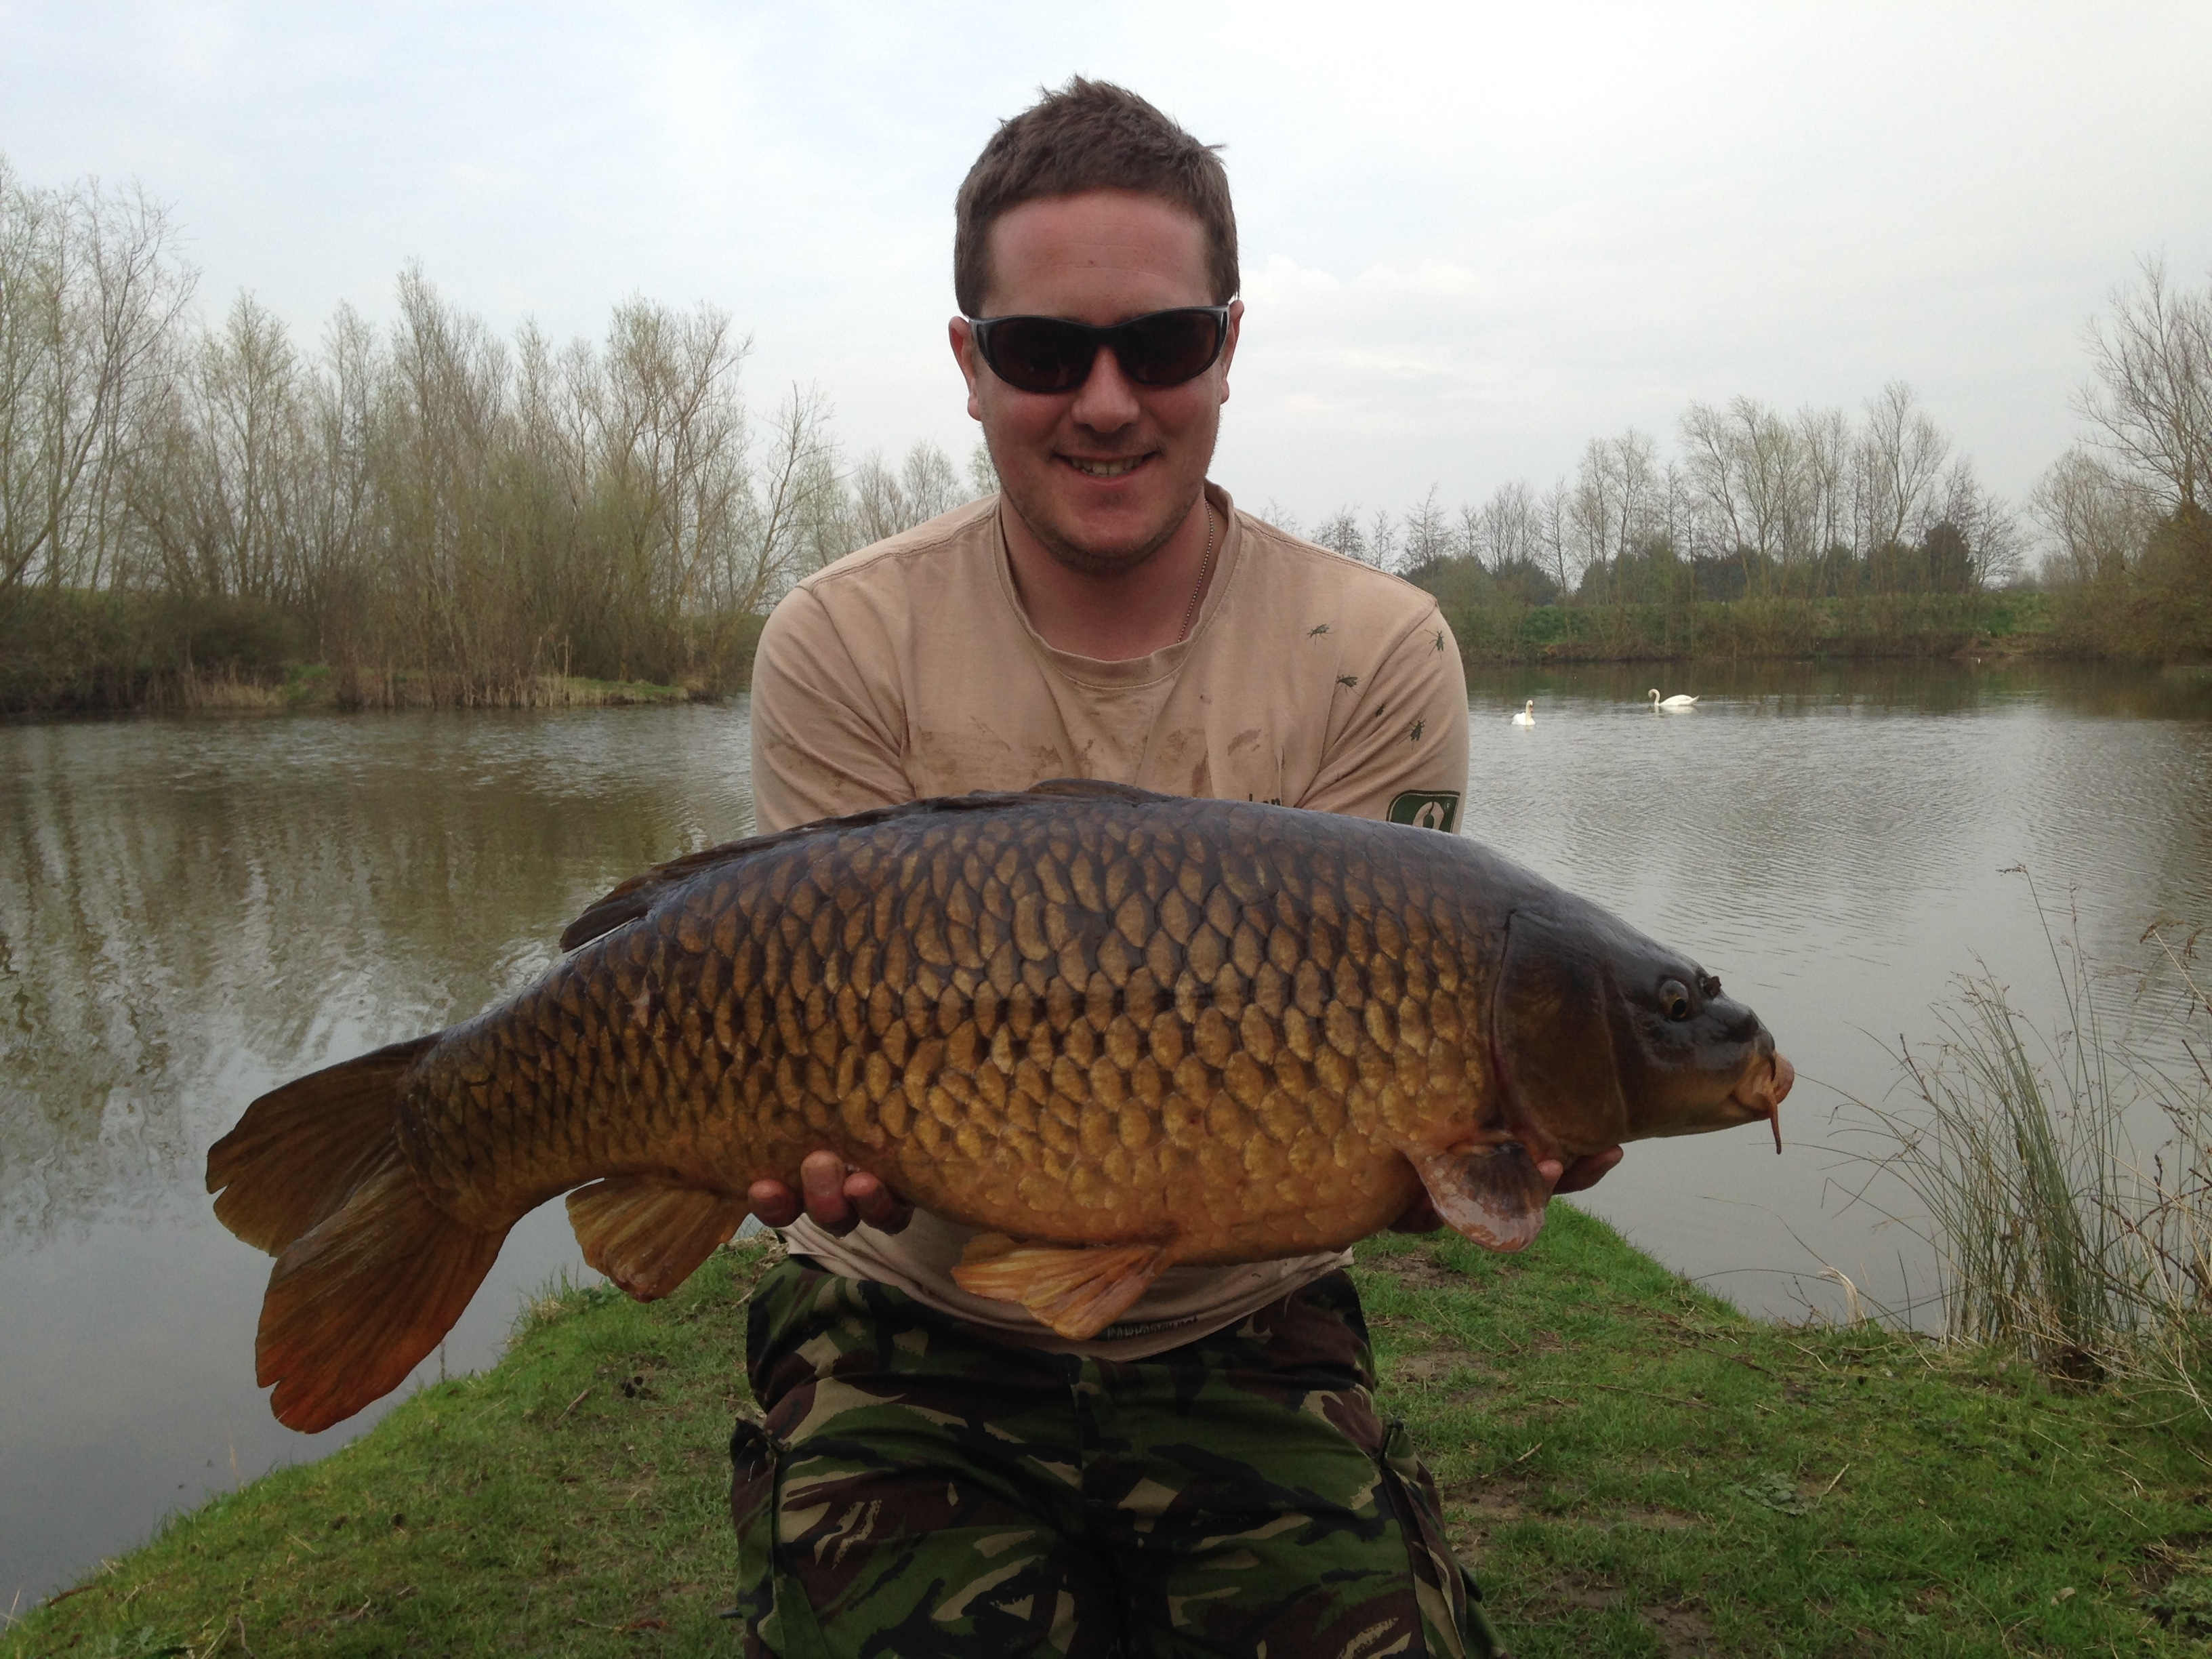 Liam Slee with a 16lb Carp caught from Heritage Lake.